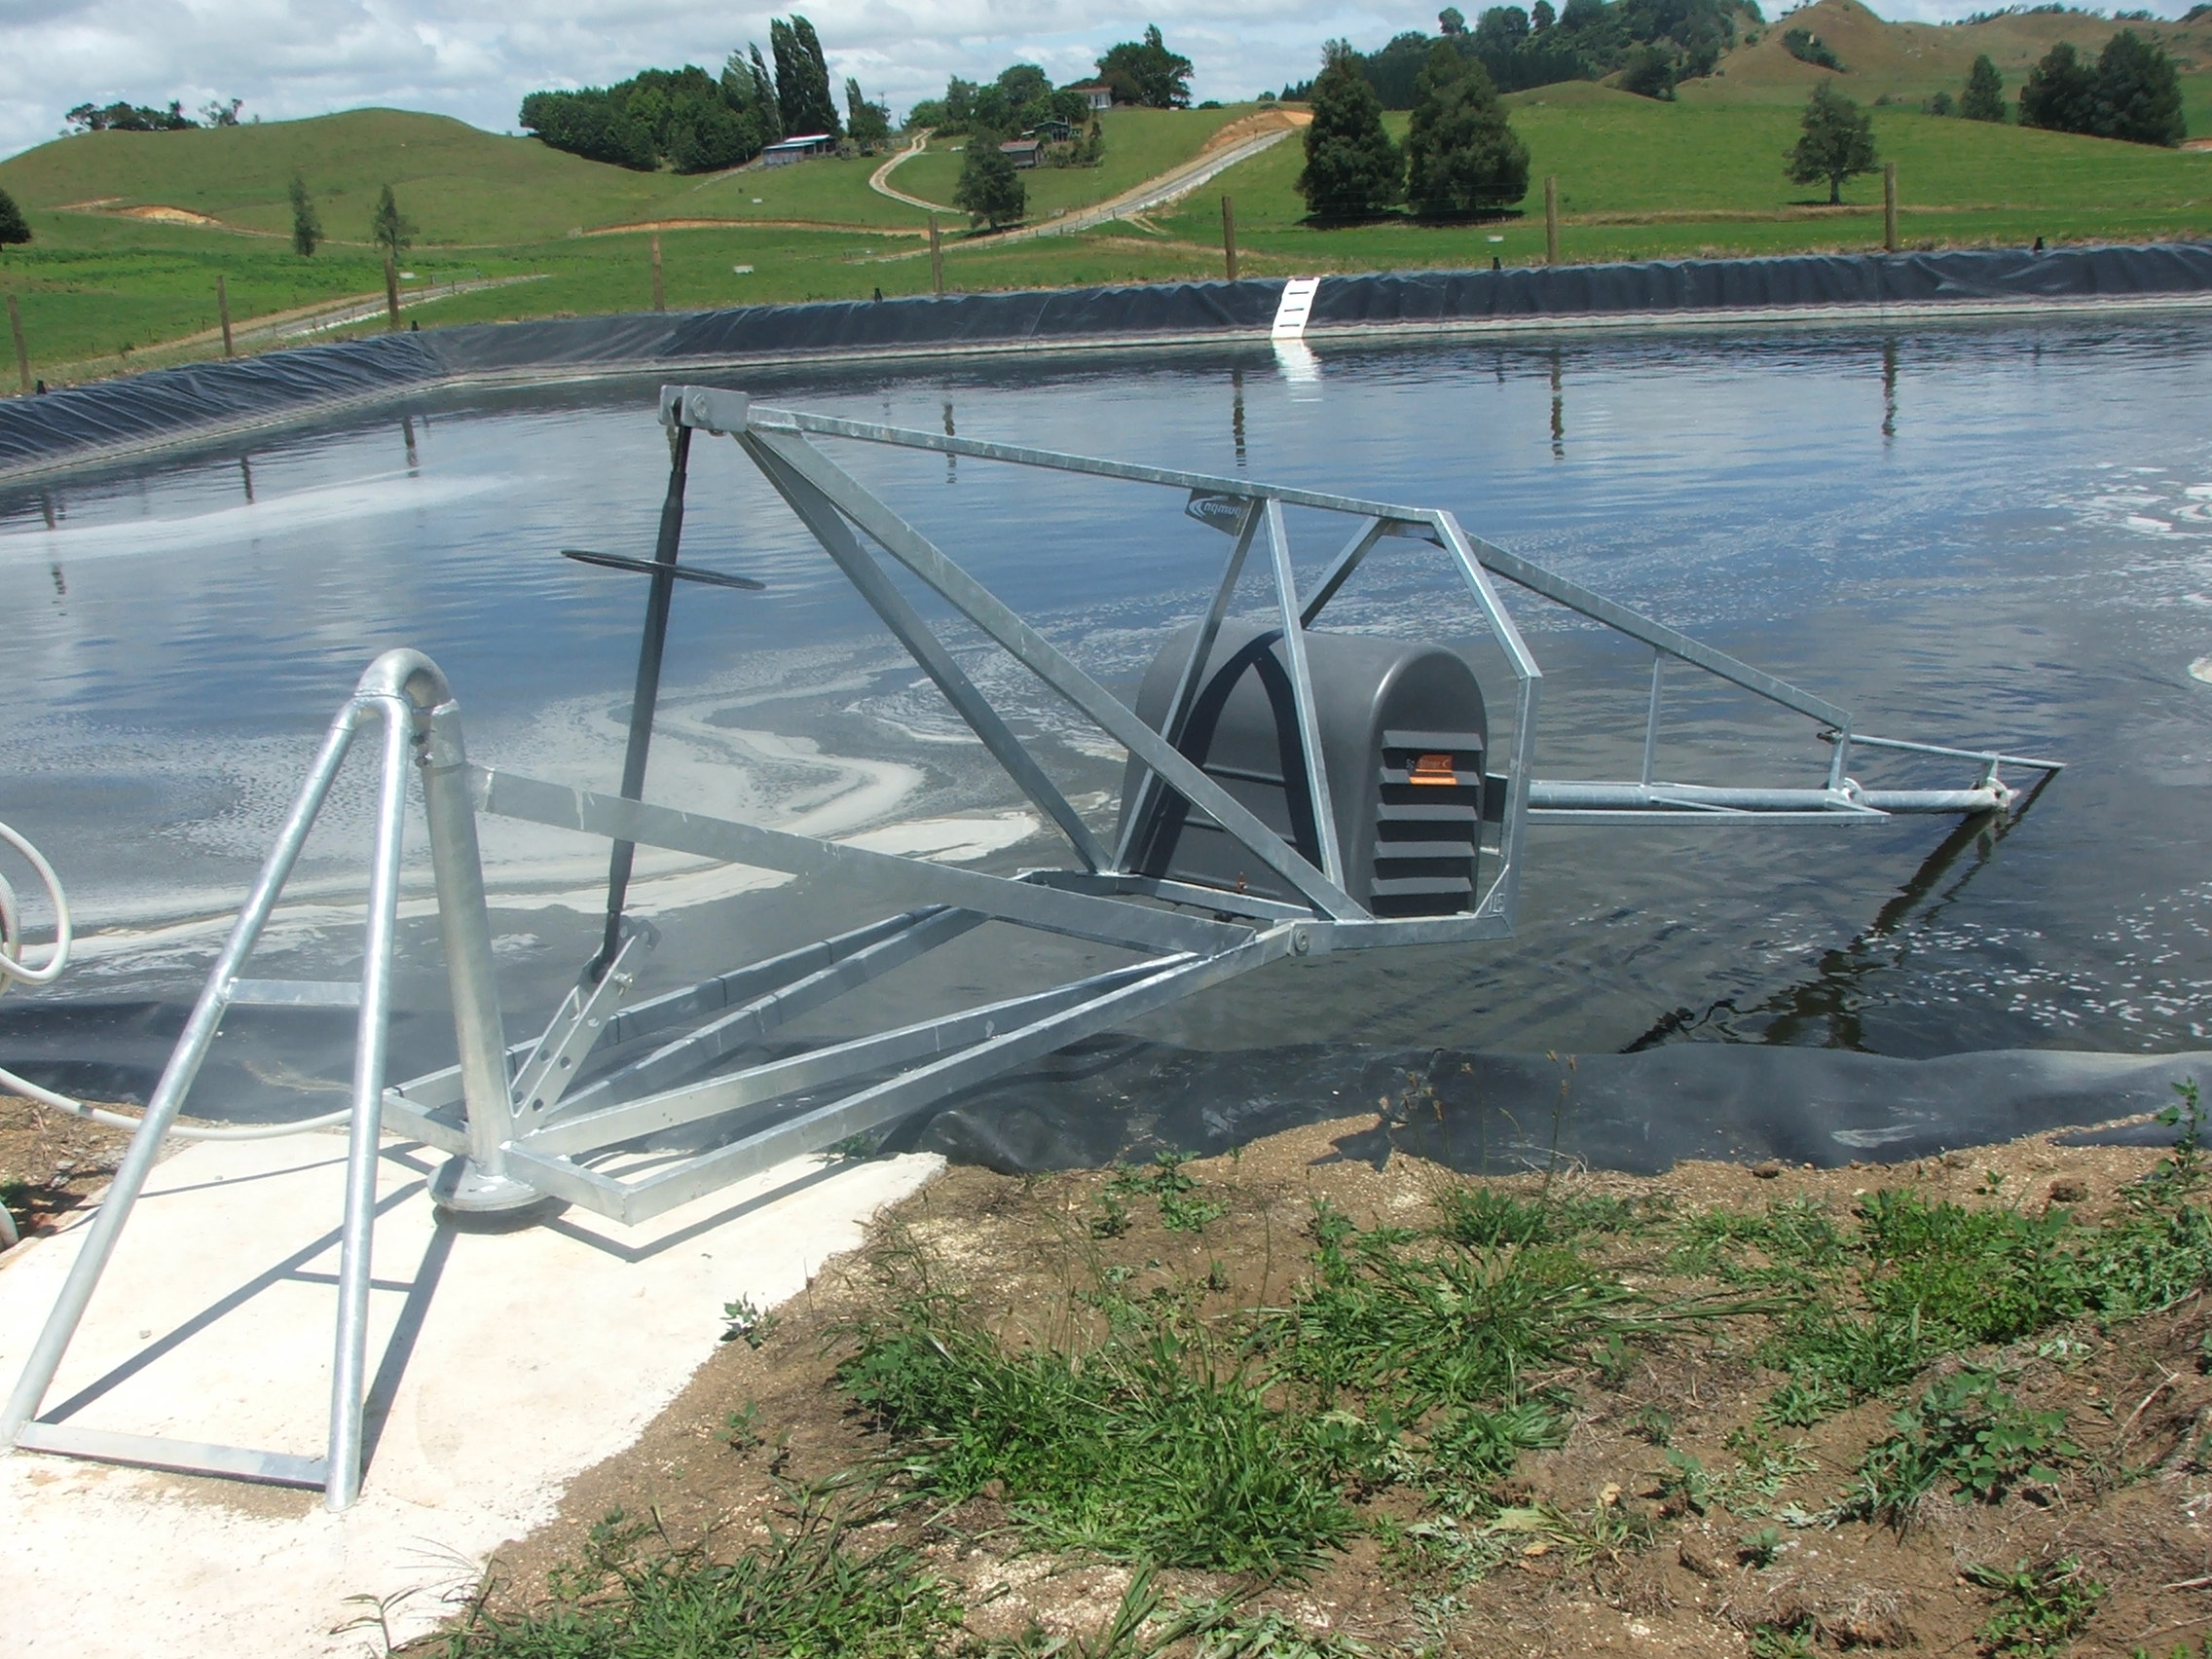 Sp stirrer - effluent pond